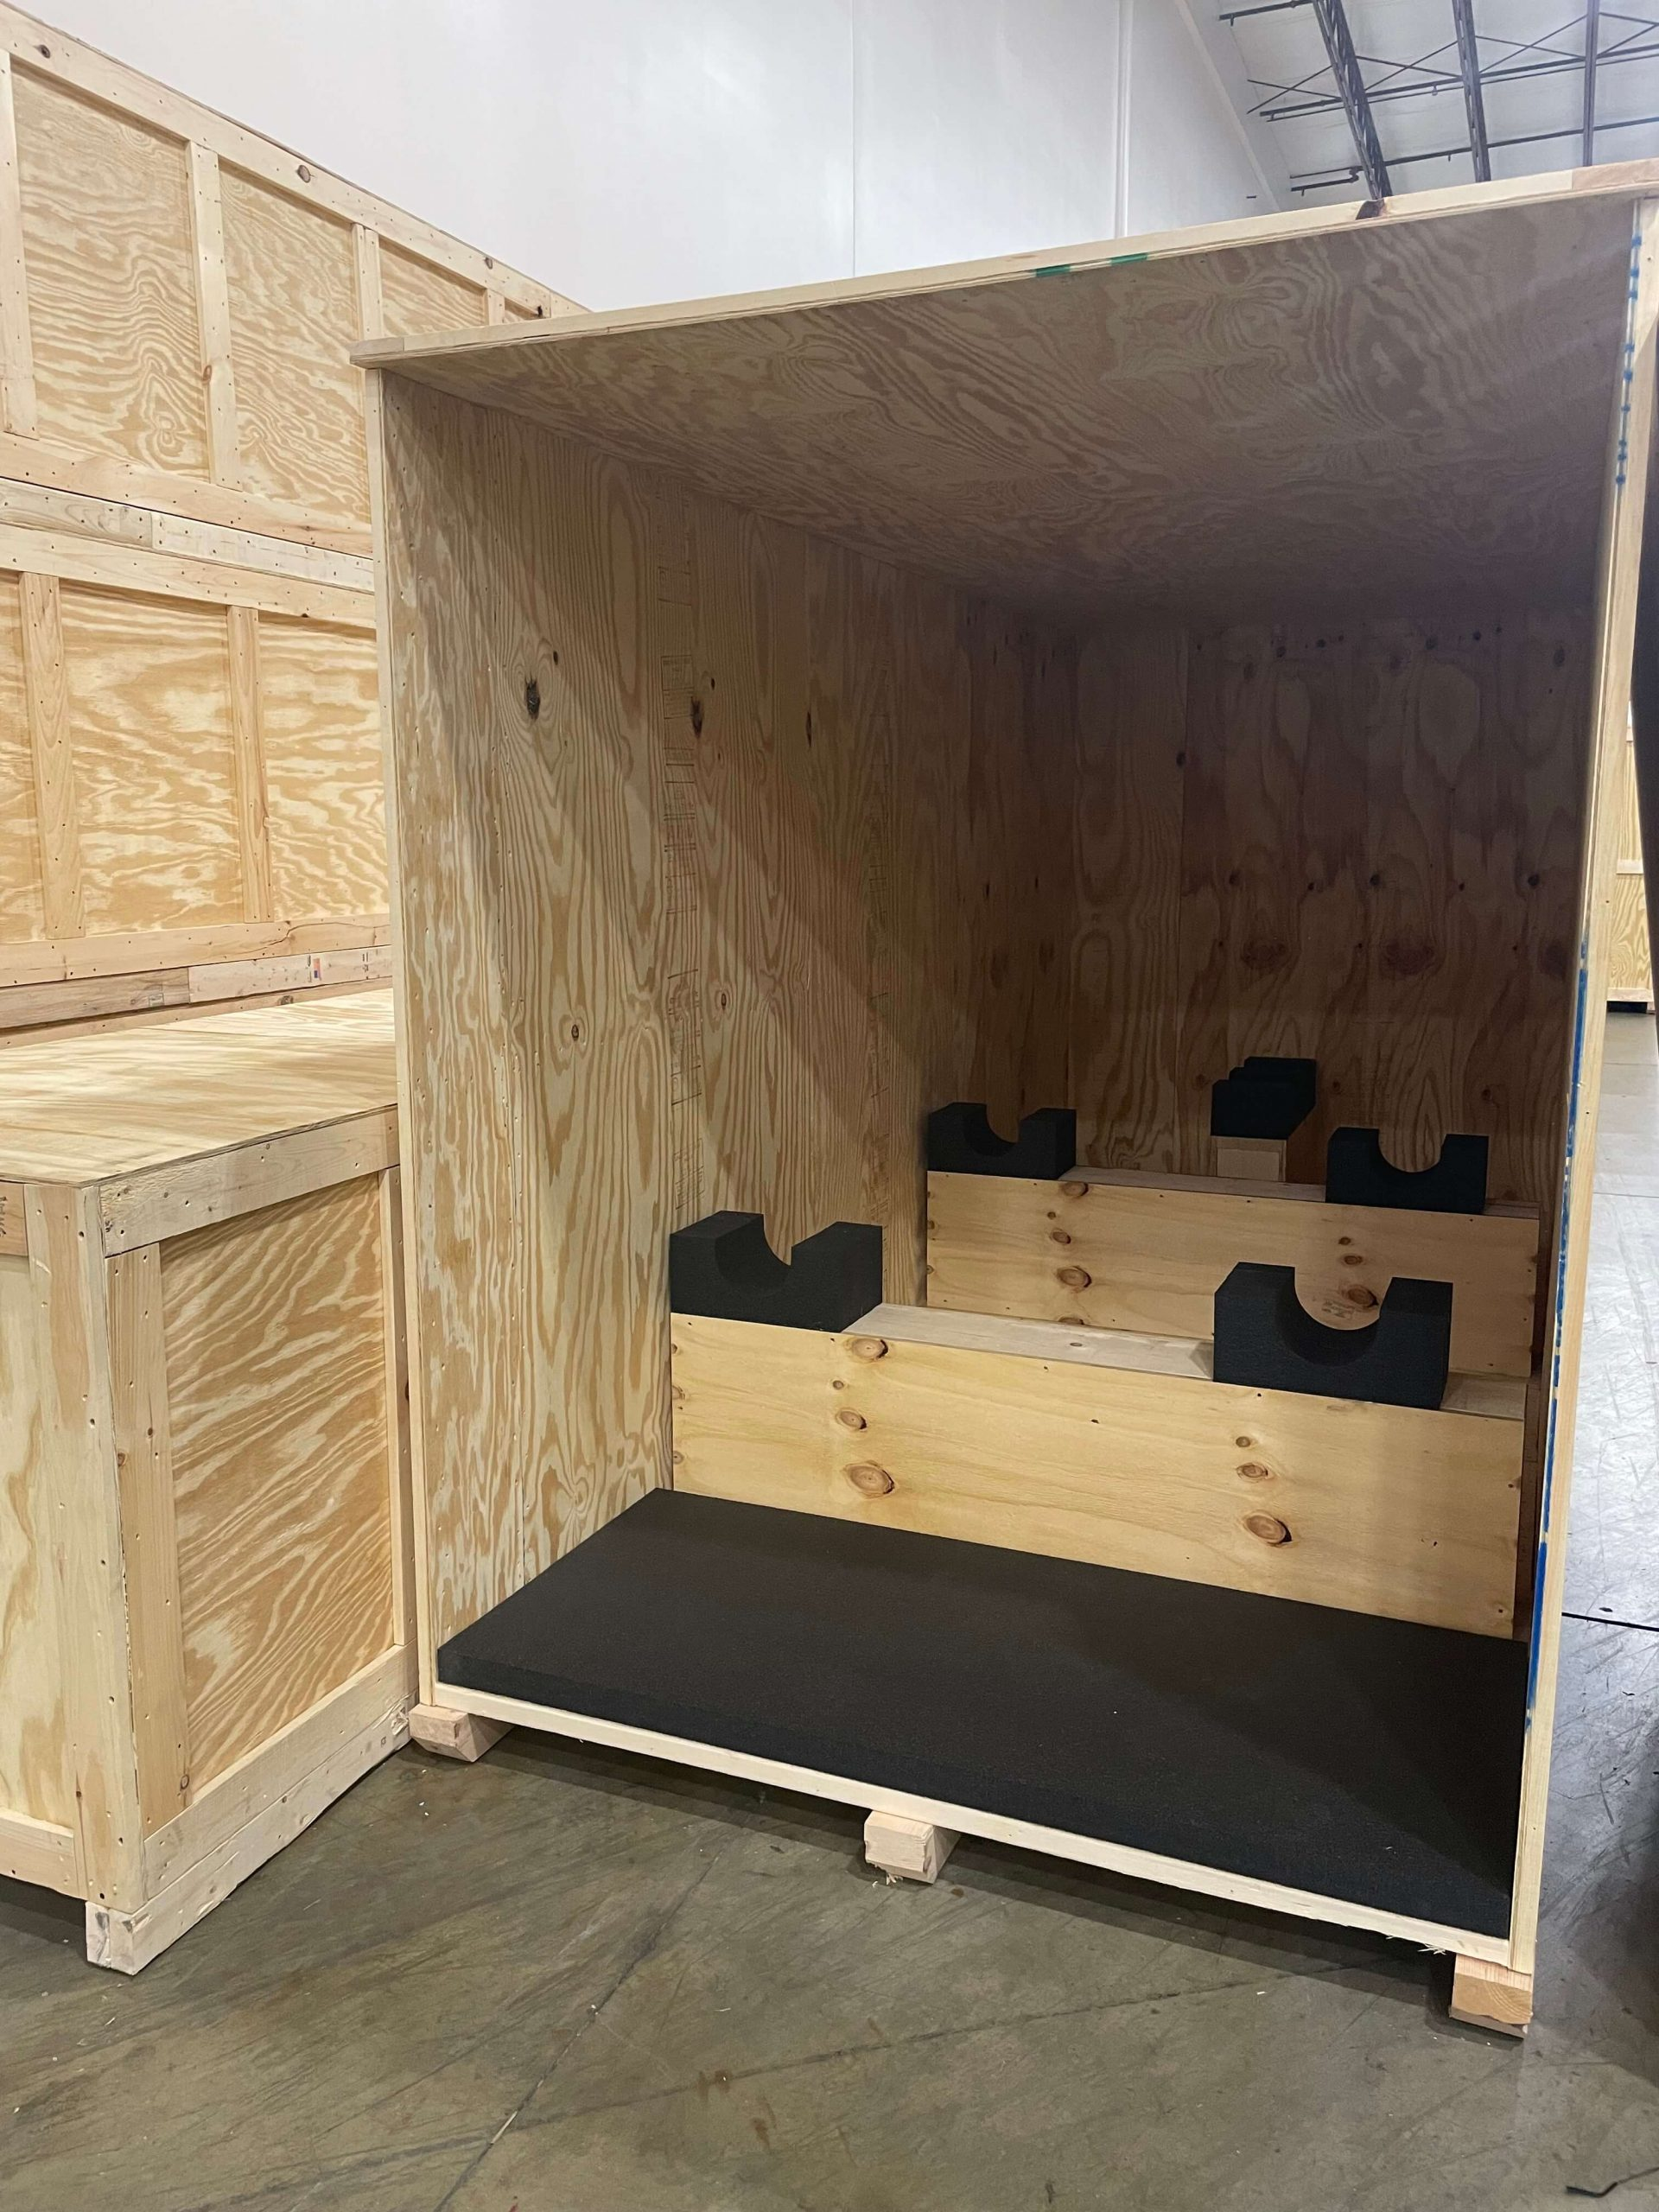 inside big shipping crate